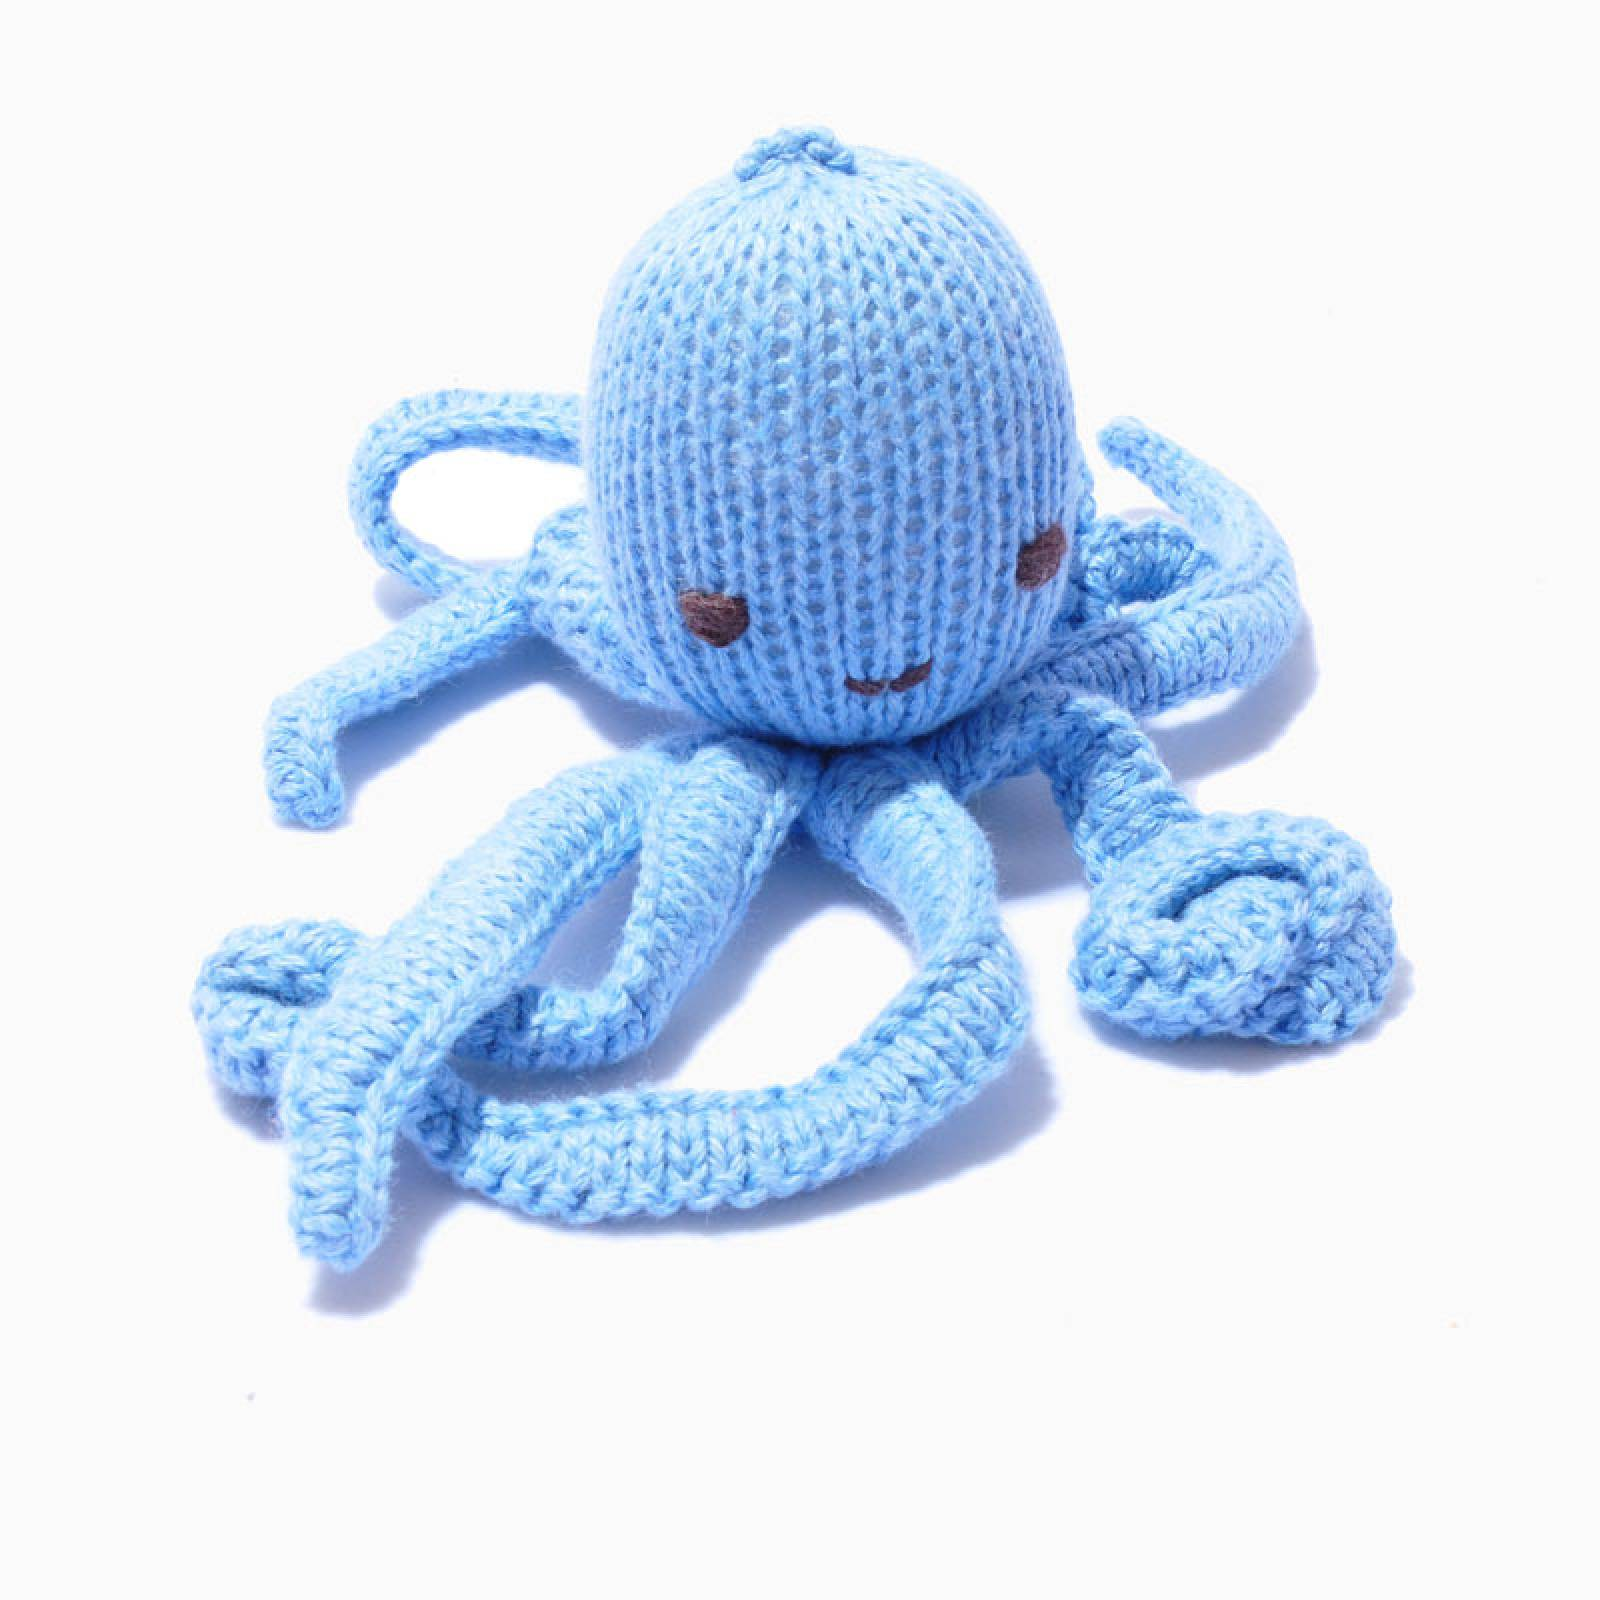 Blue Octopus Hand Knitted Soft Toy Organic Cotton